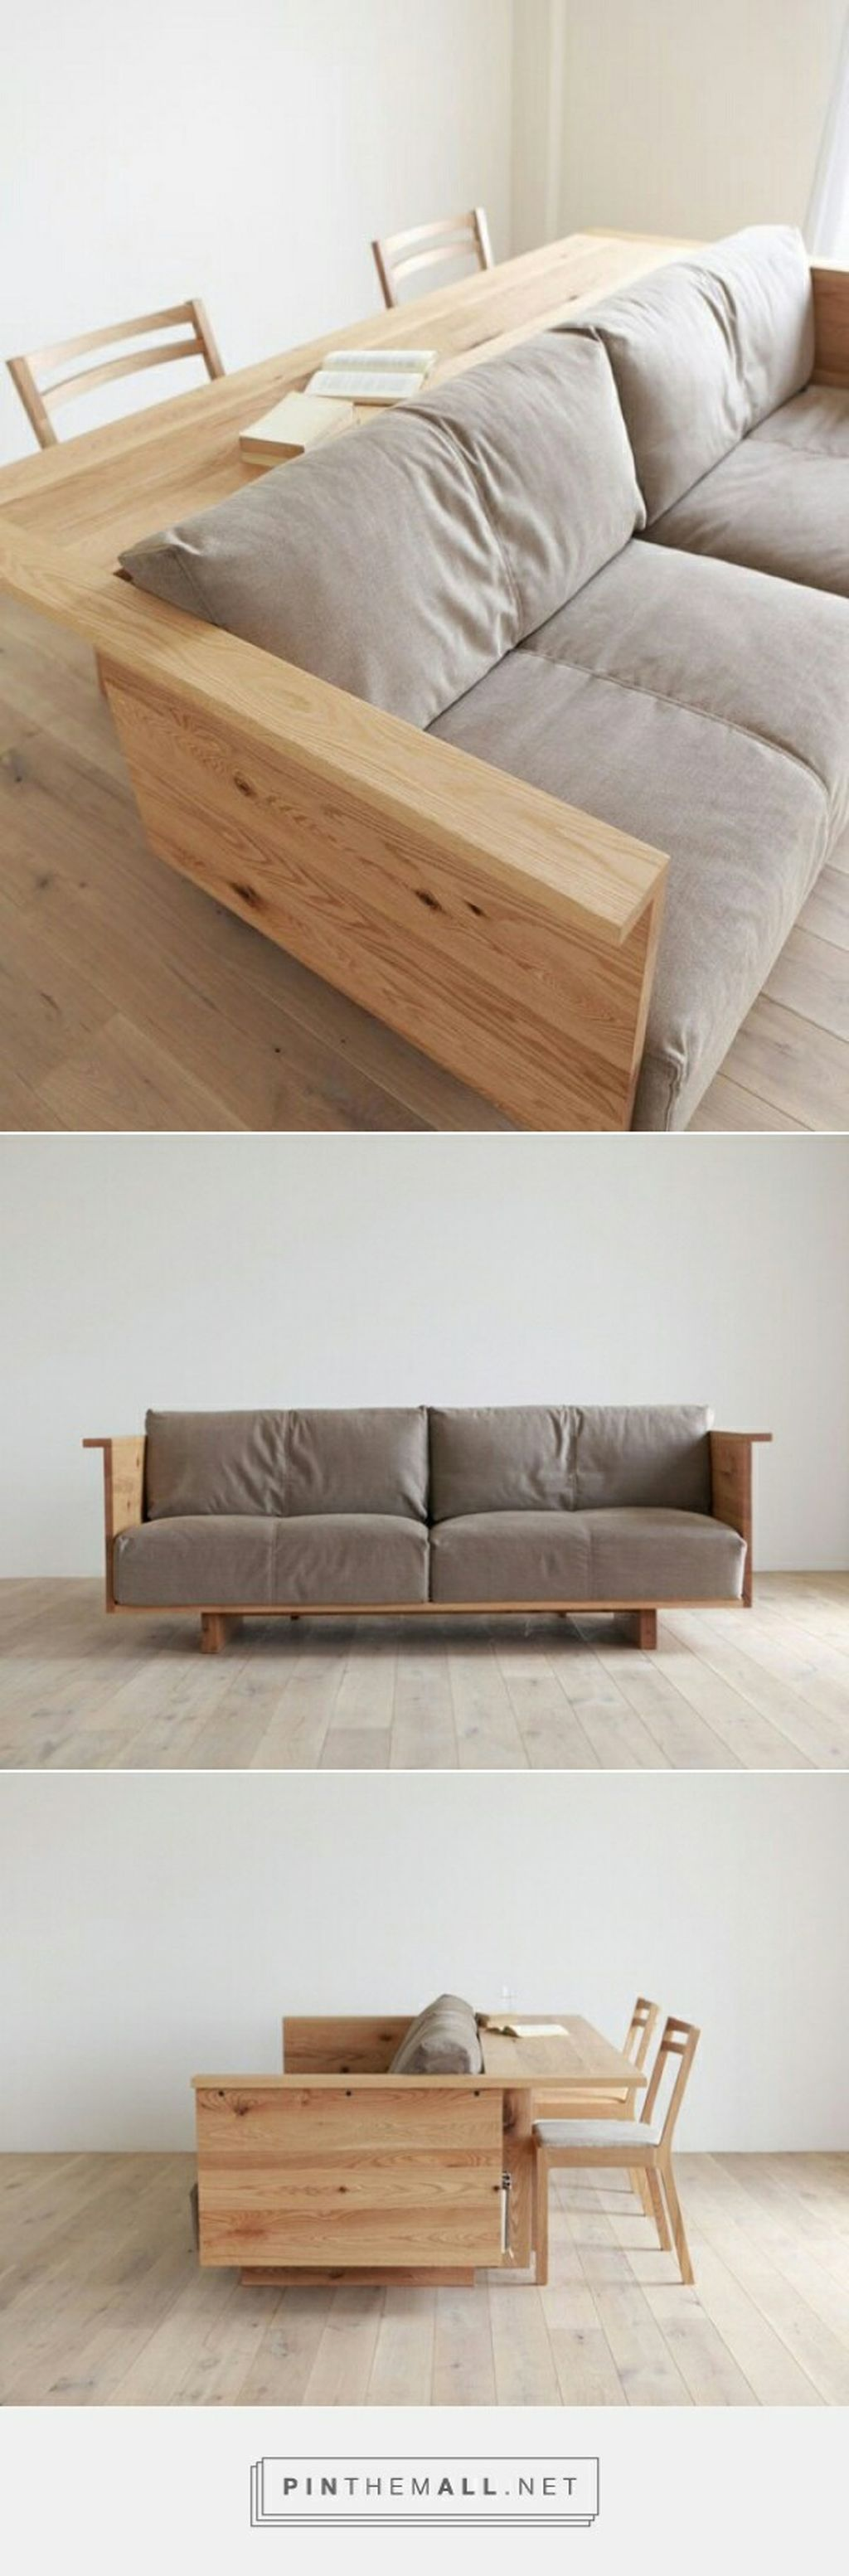 Pin by polly garner on affordable decor pinterest furniture